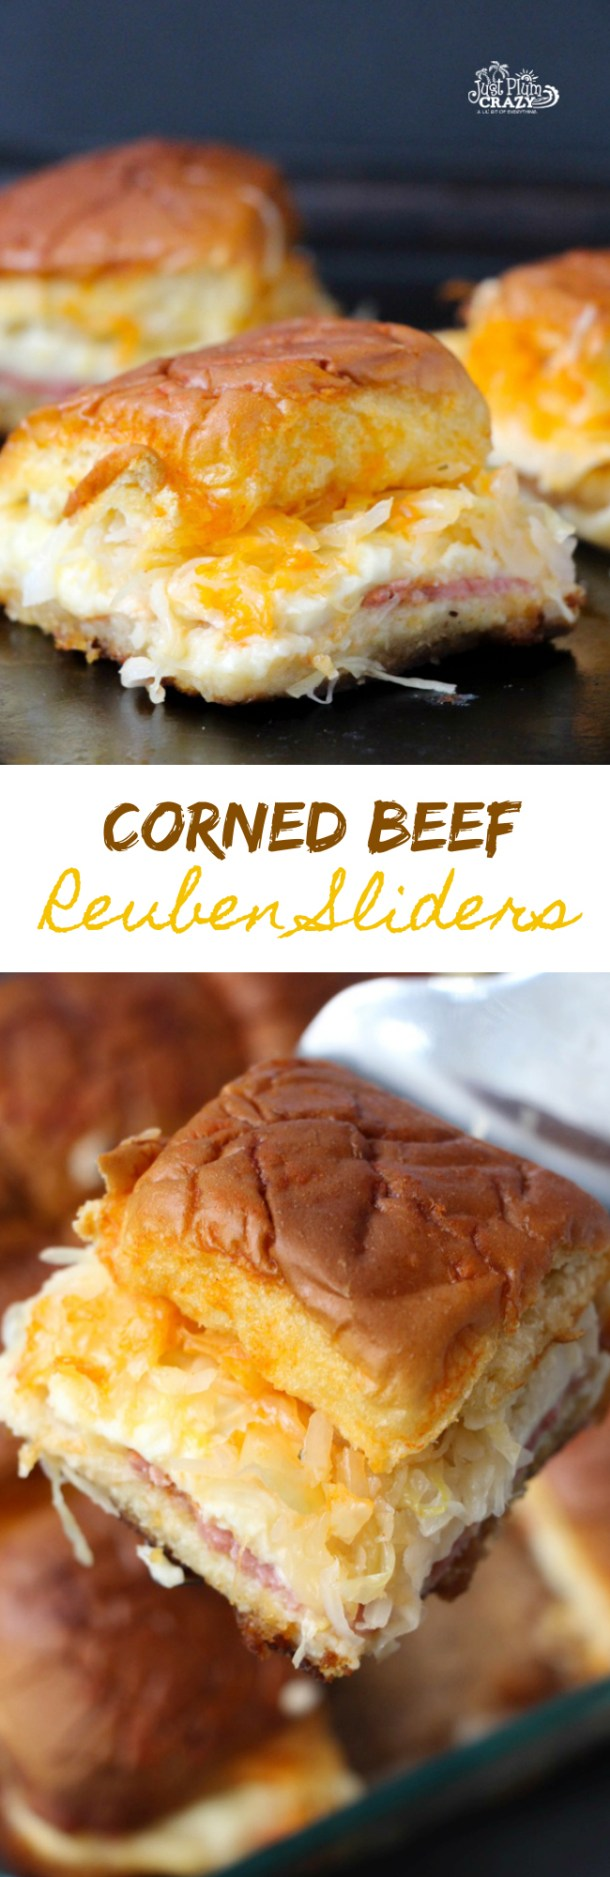 Since I don't have a pastrami sandwich recipe, we are sharing a Corned Beef Reuben Sliders recipe which you can also use for other holidays besides St. Patrick's Day like the big game coming up in a couple of weeks or even a summer picnic | PlumCrazyAboutCoupons.com